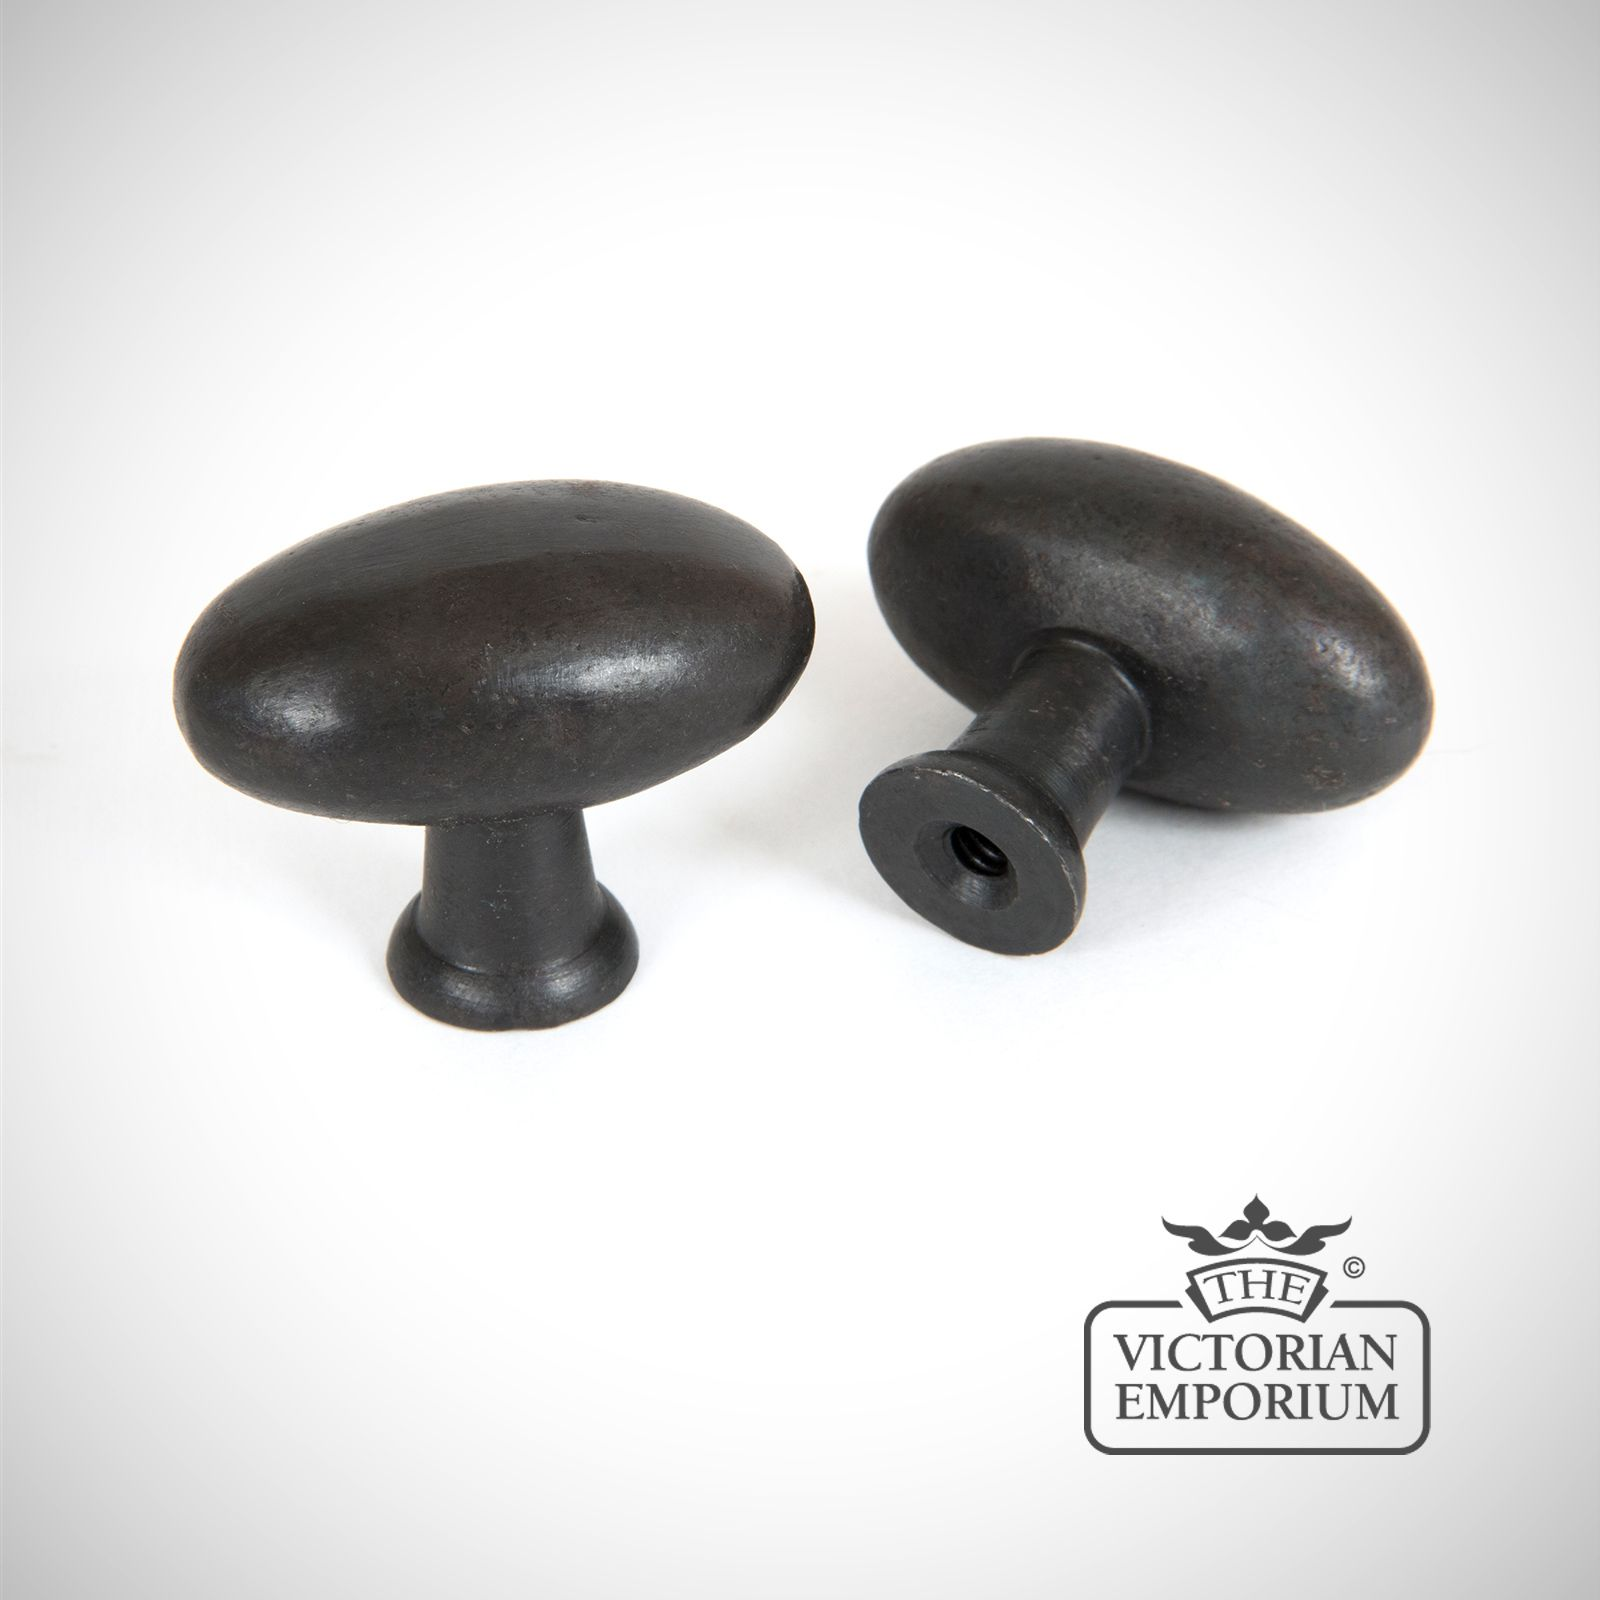 Beeswax Octagonal Cabinet Knobs Small: Oval Cabinet Knob With Beeswax Finish